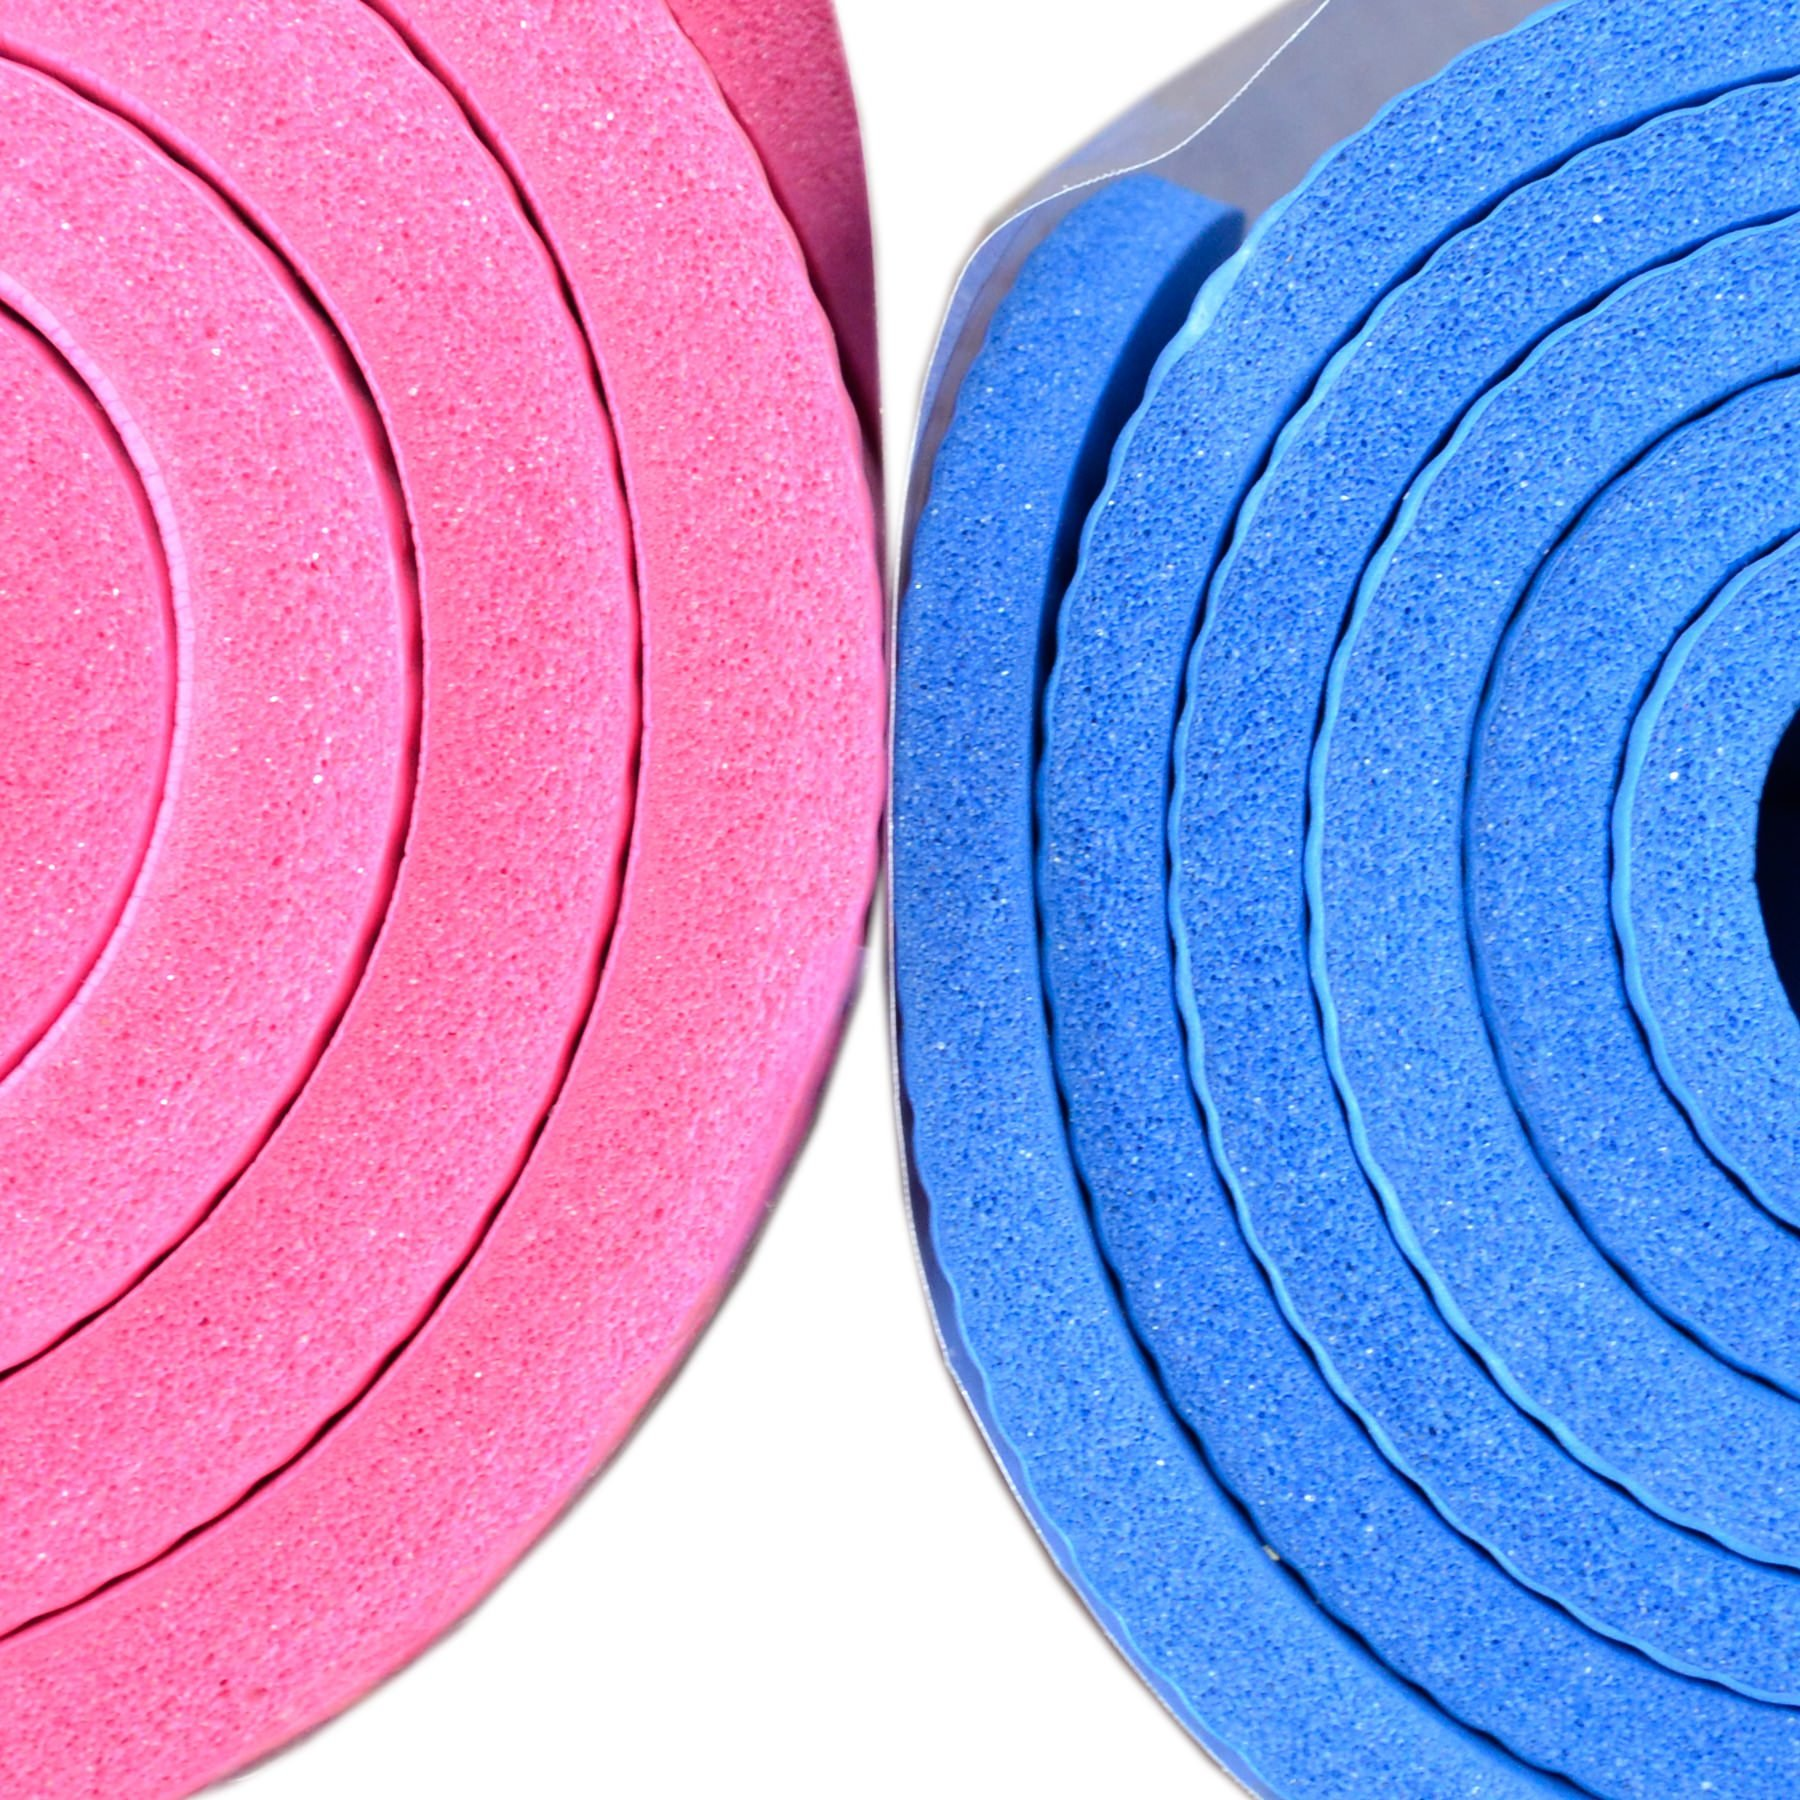 Physio World Thick Exercise Mat - 15mm Blue by phy (Image #4)